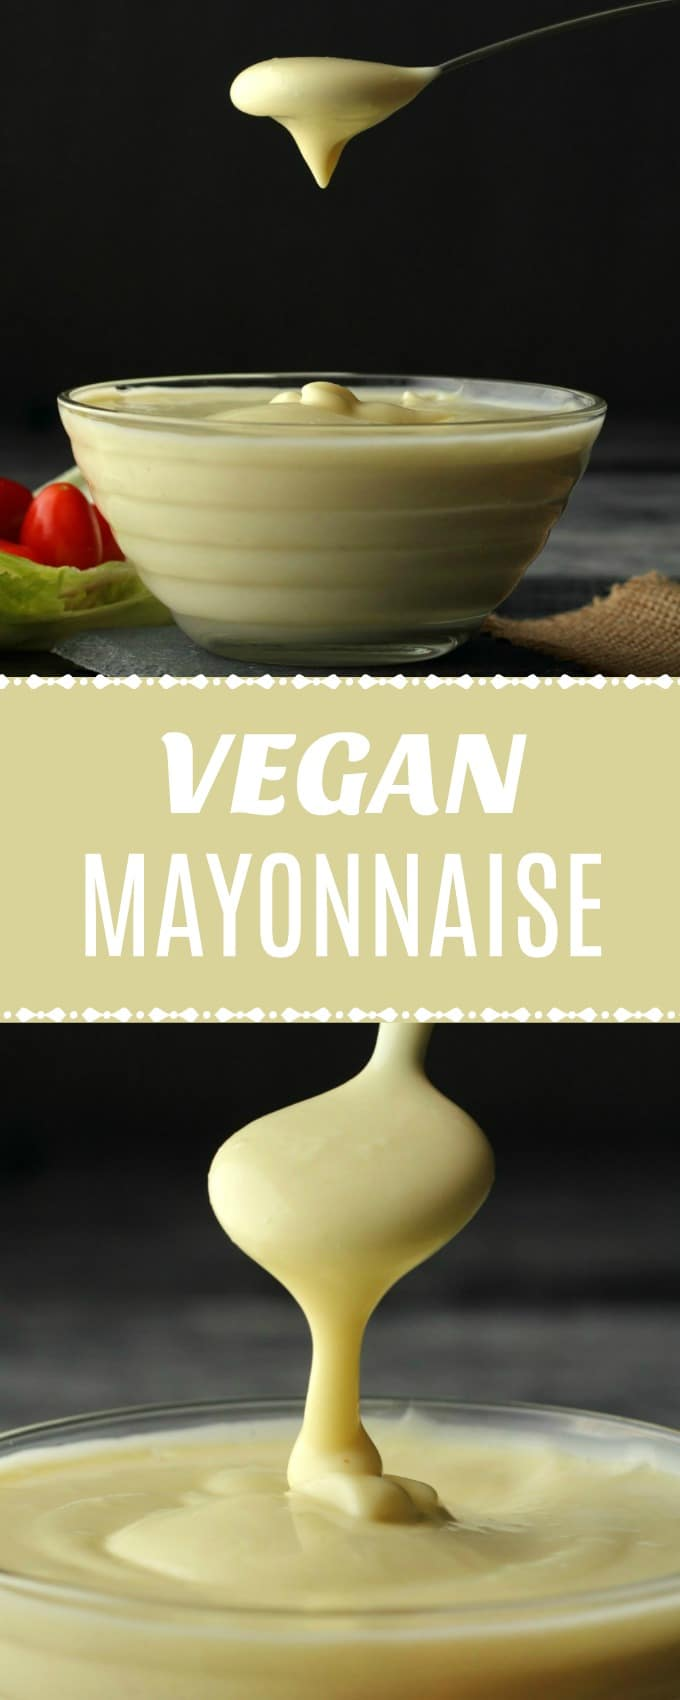 Vegan Mayonnaise Creamy And Tangy With Aquafaba